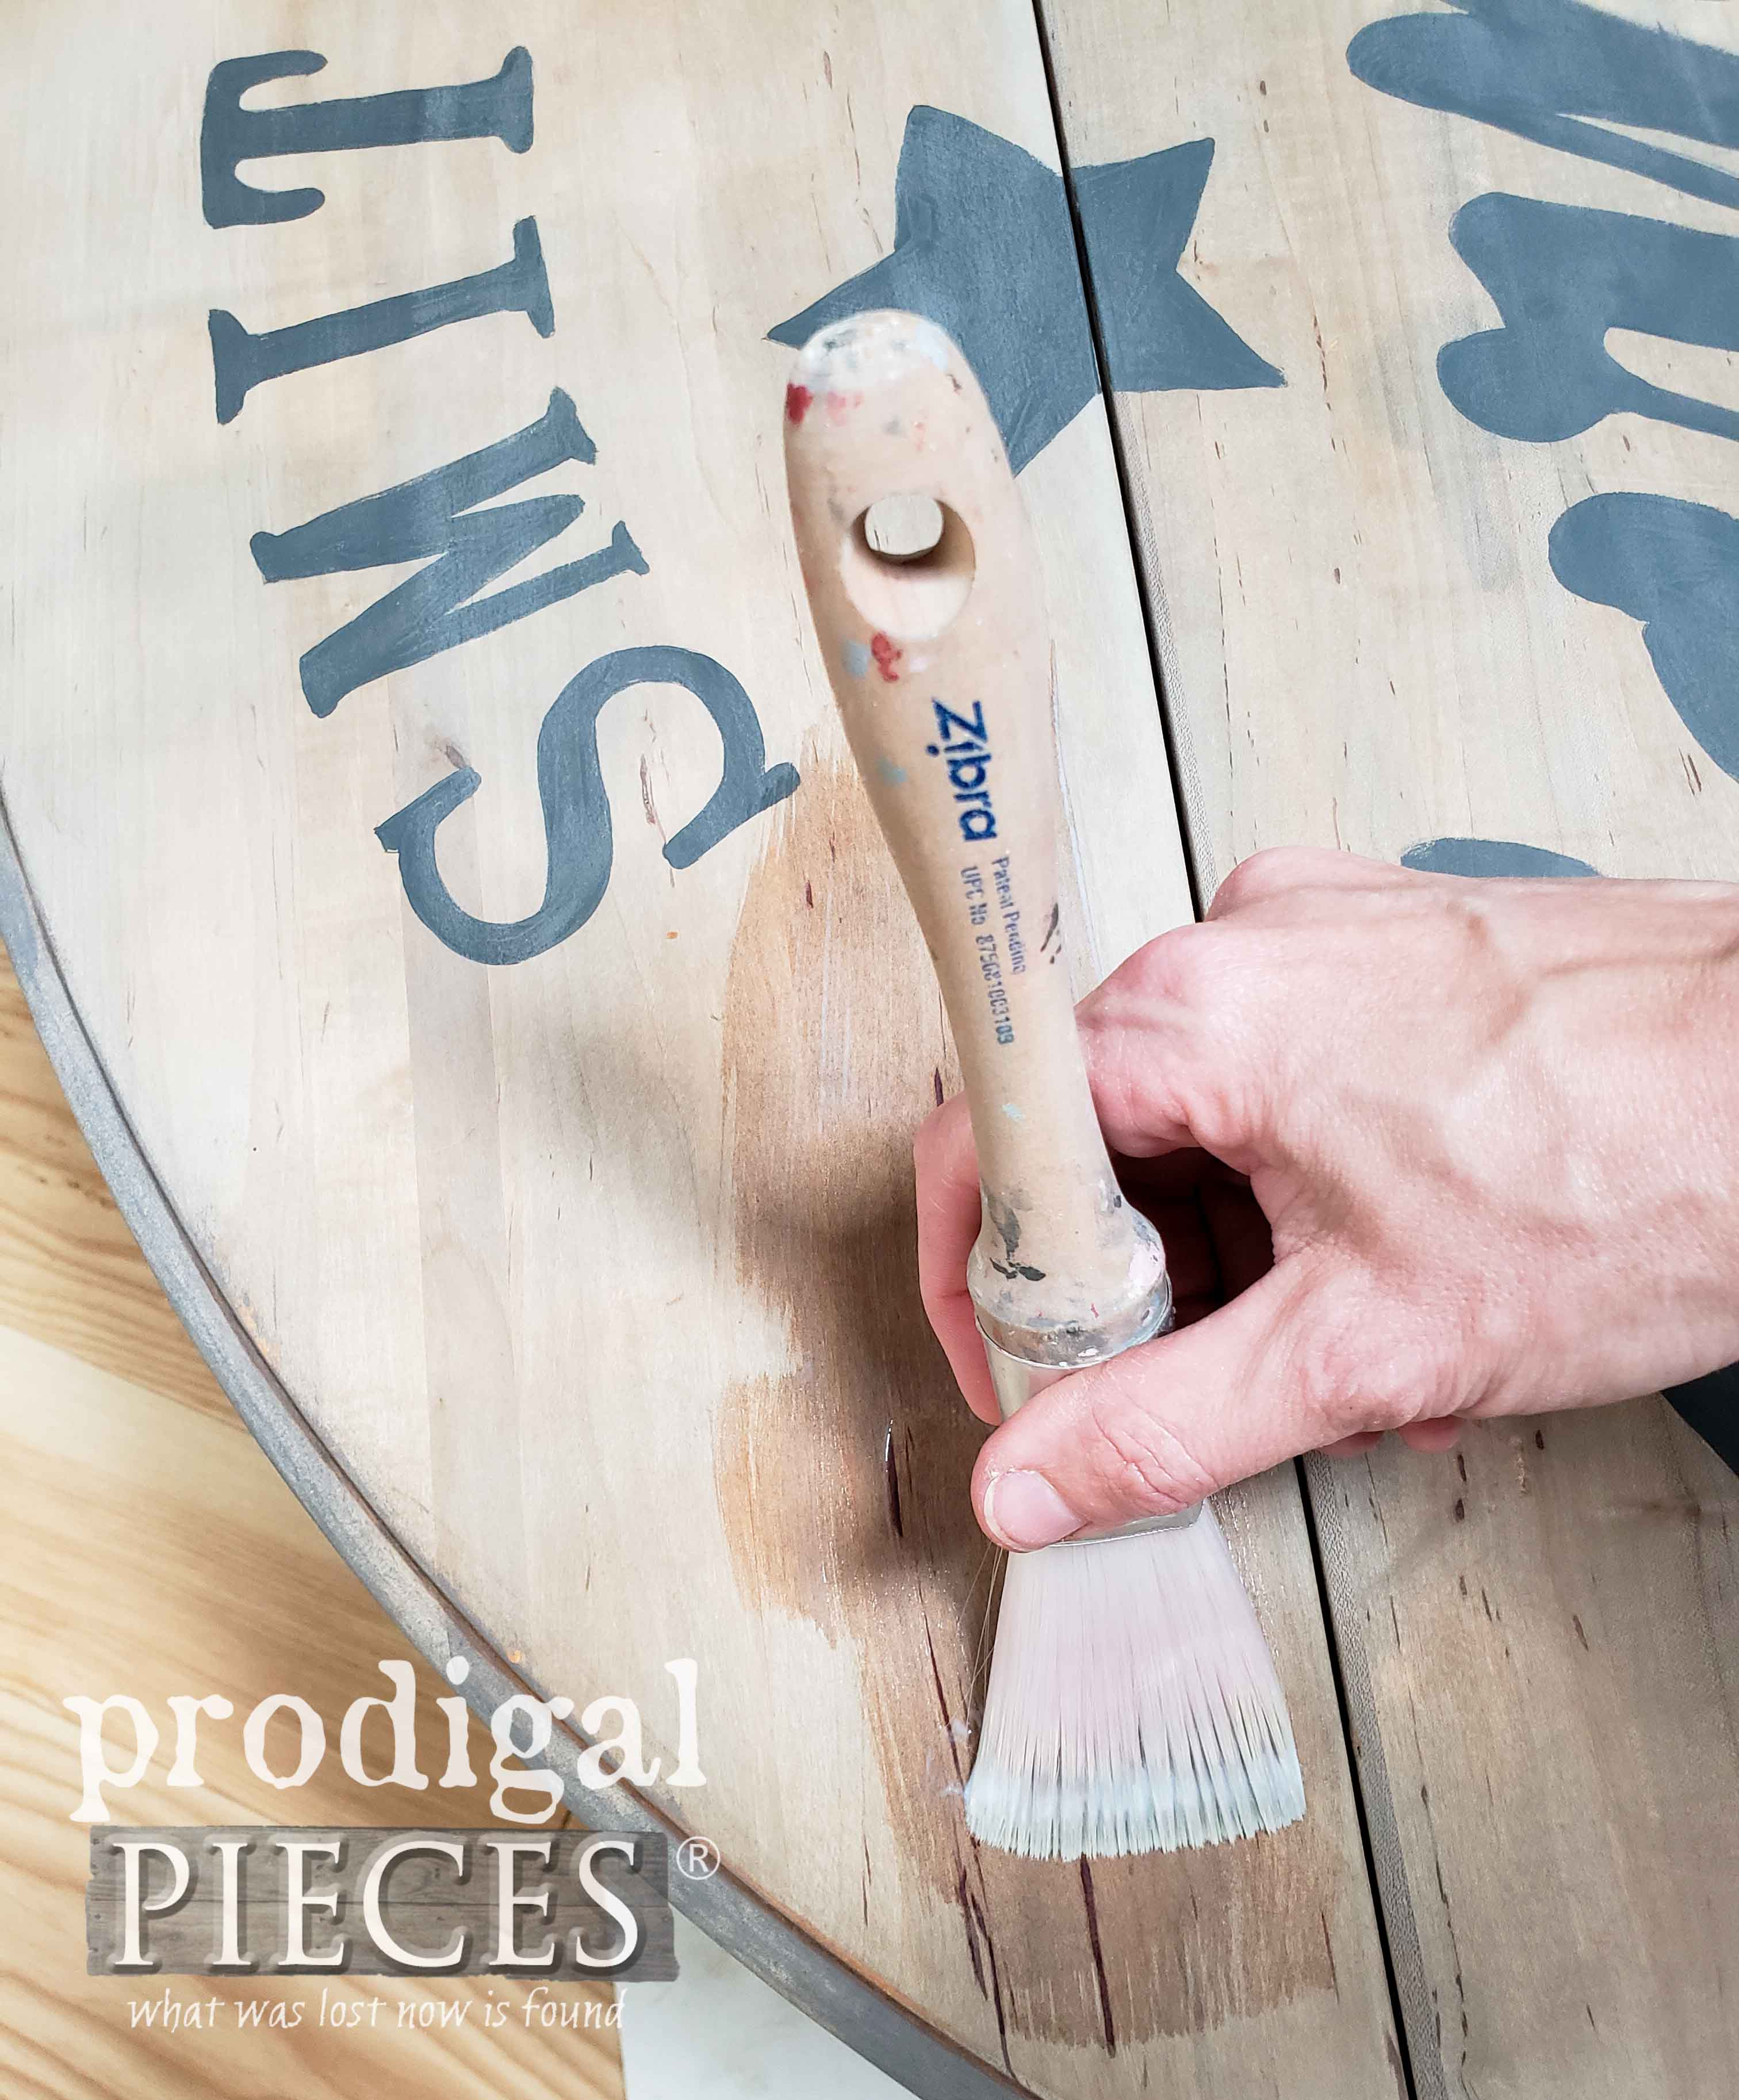 Applying Matte Poly Topcoat with Zibra Fan Brush on Farmhouse Drop-Leaf Coffee Table   by Larissa of Prodigal Pieces   prodigalpieces.com #prodigalpieces #diy #furniture #home #homedecor